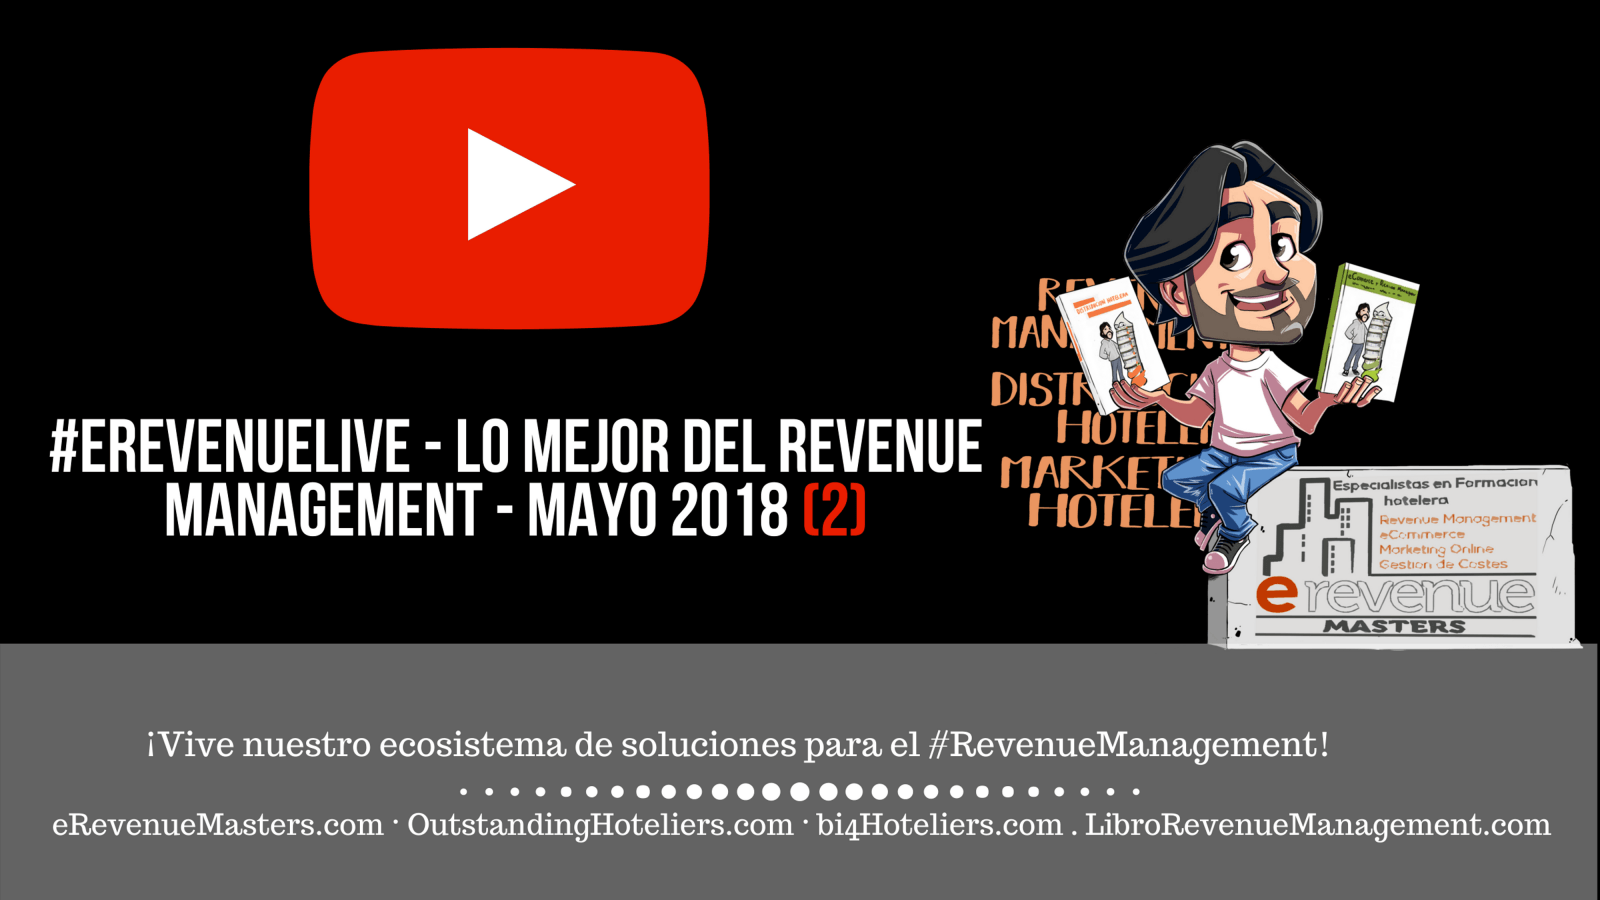 (video & Podcast) #eRevenueLive - Lo mejor del Revenue Management - mayo 2018 (2)